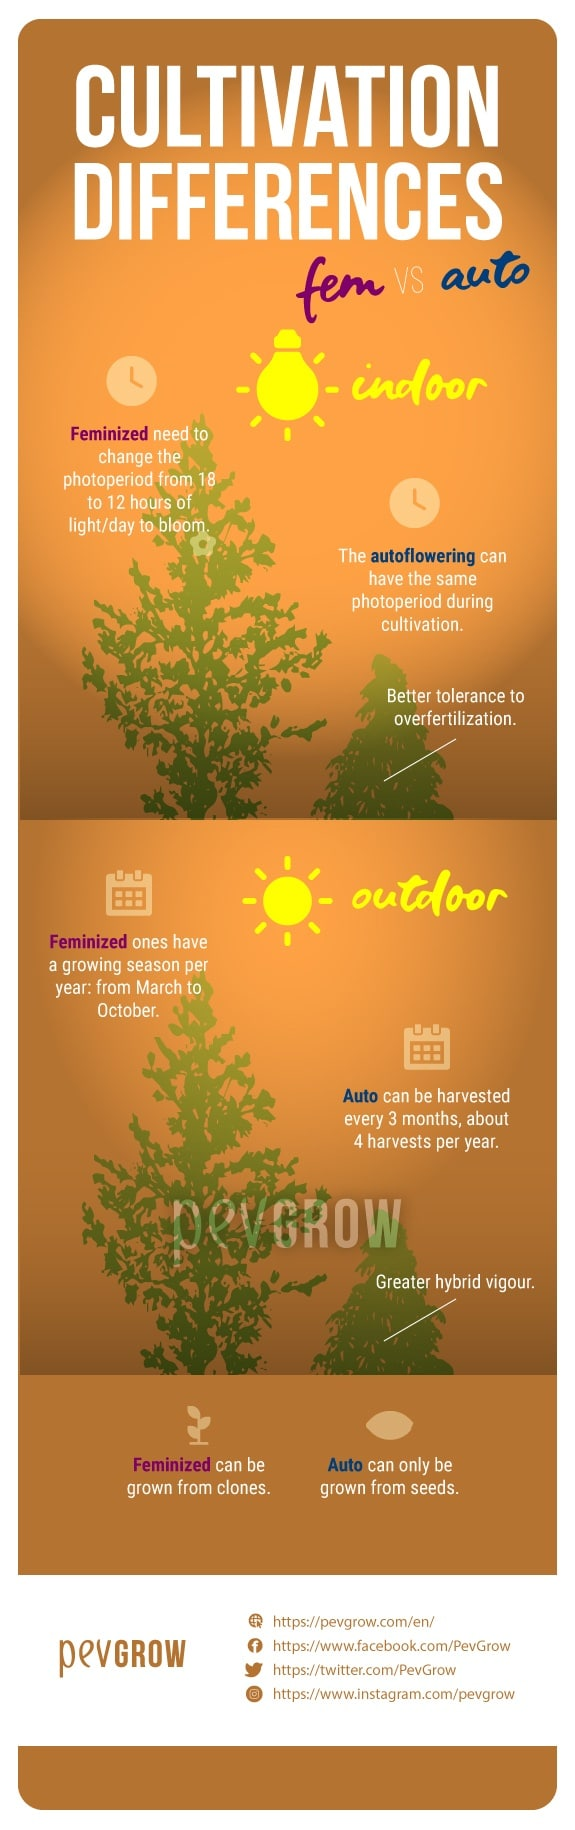 image showing the differences in cultivation between autoflowering and feminized plants*